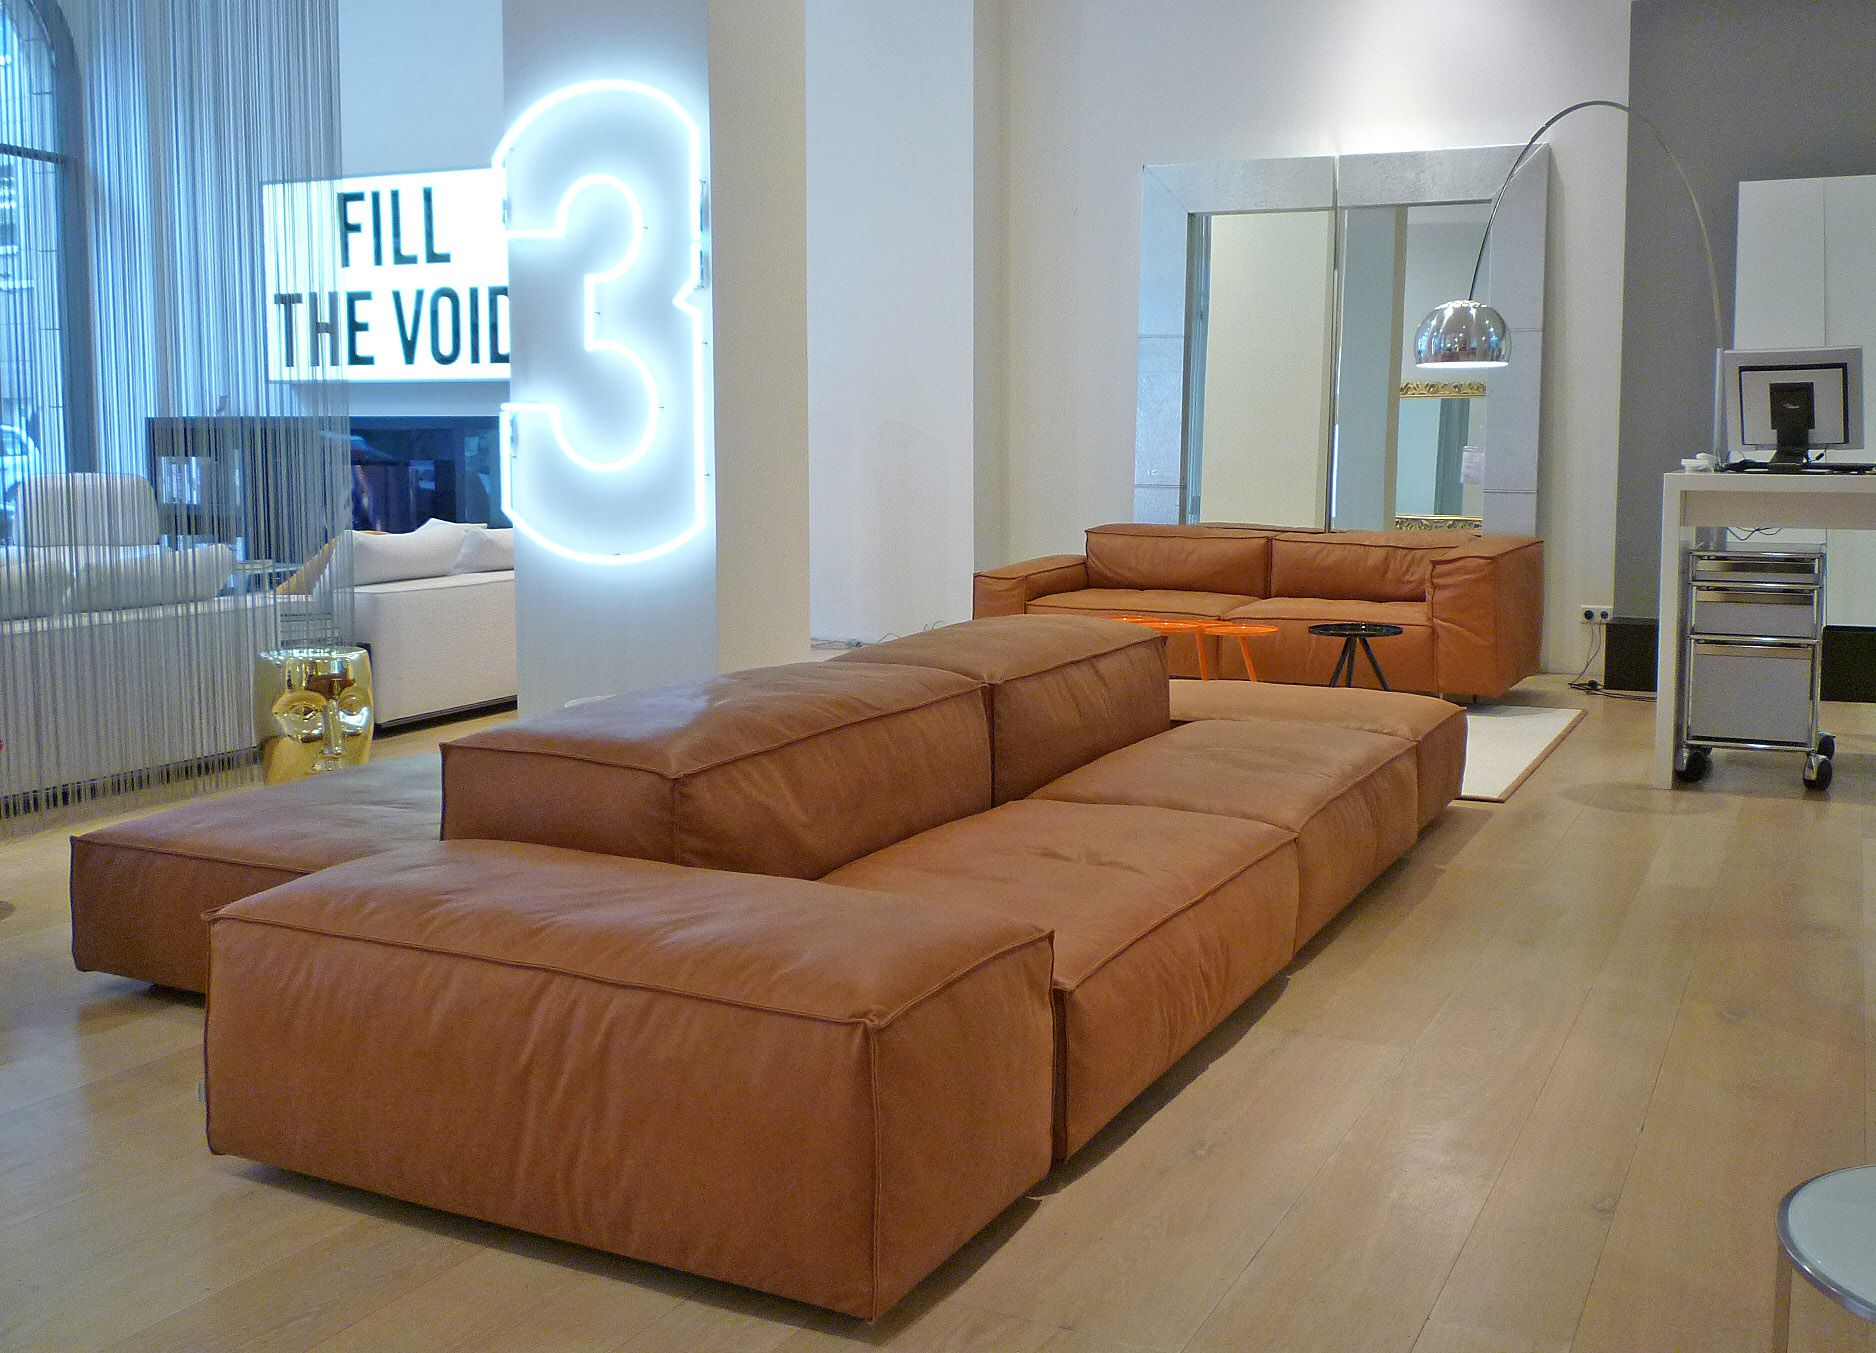 Comfiest ever looking day bed verzelloni zoe xl house sofa extrasoft design piero lissoni in a beautiful showroom parisarafo Image collections